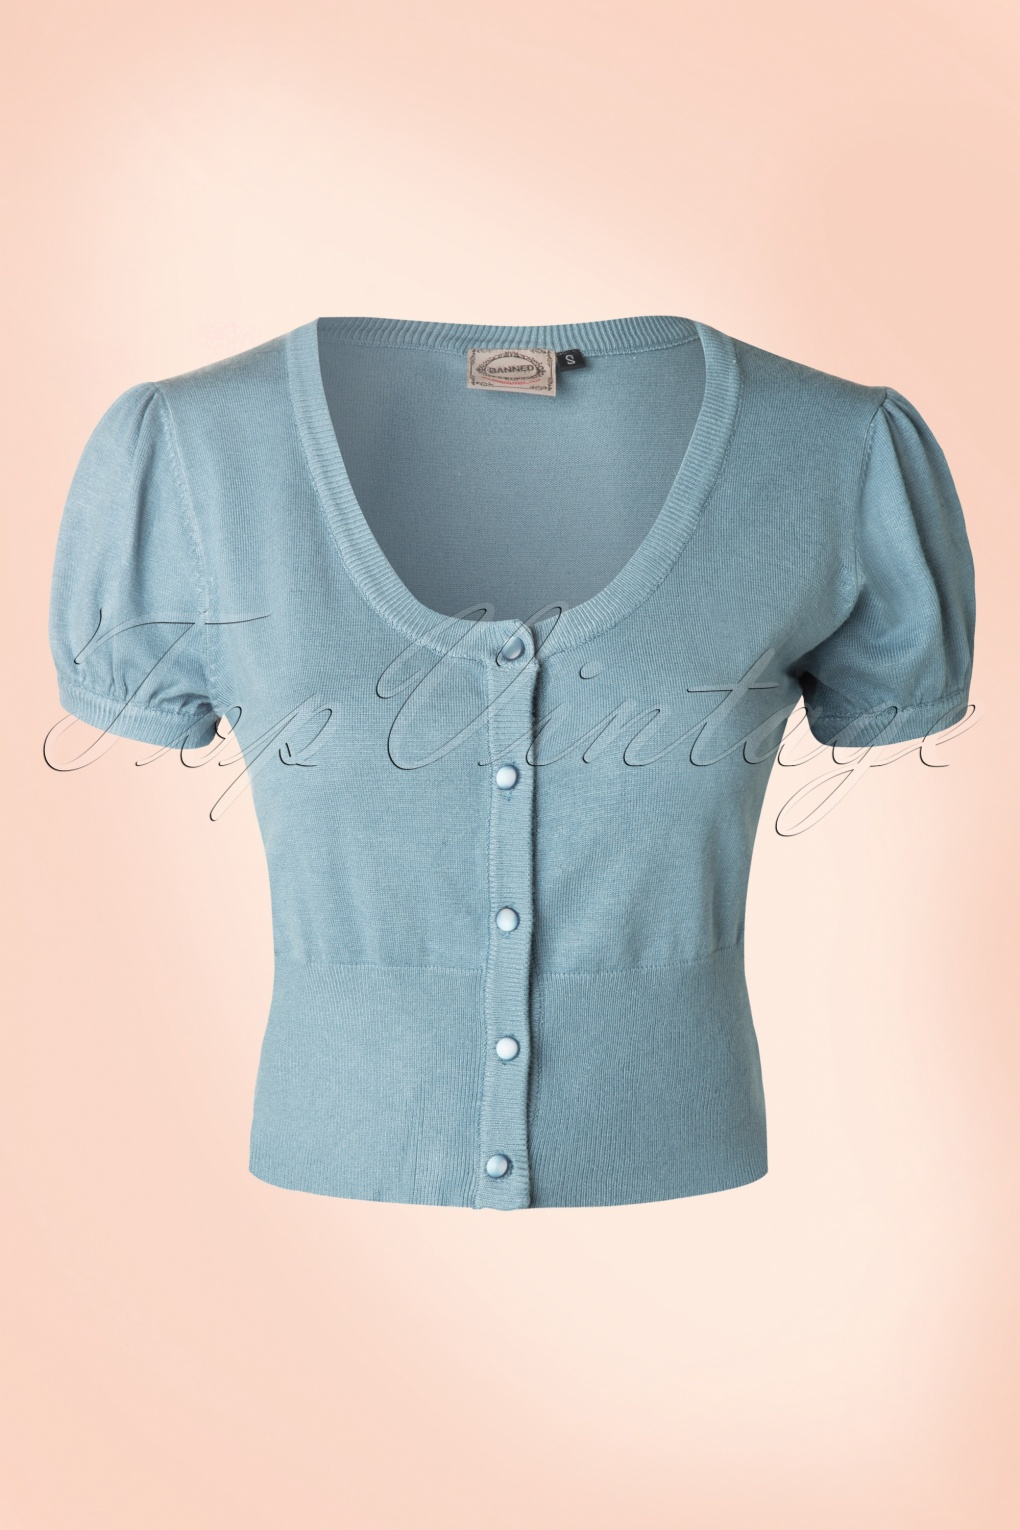 Vintage Sweaters – 1910s, 1920s, 1930s Pictures 40s Doll Cardigan in Dusty Blue £30.36 AT vintagedancer.com